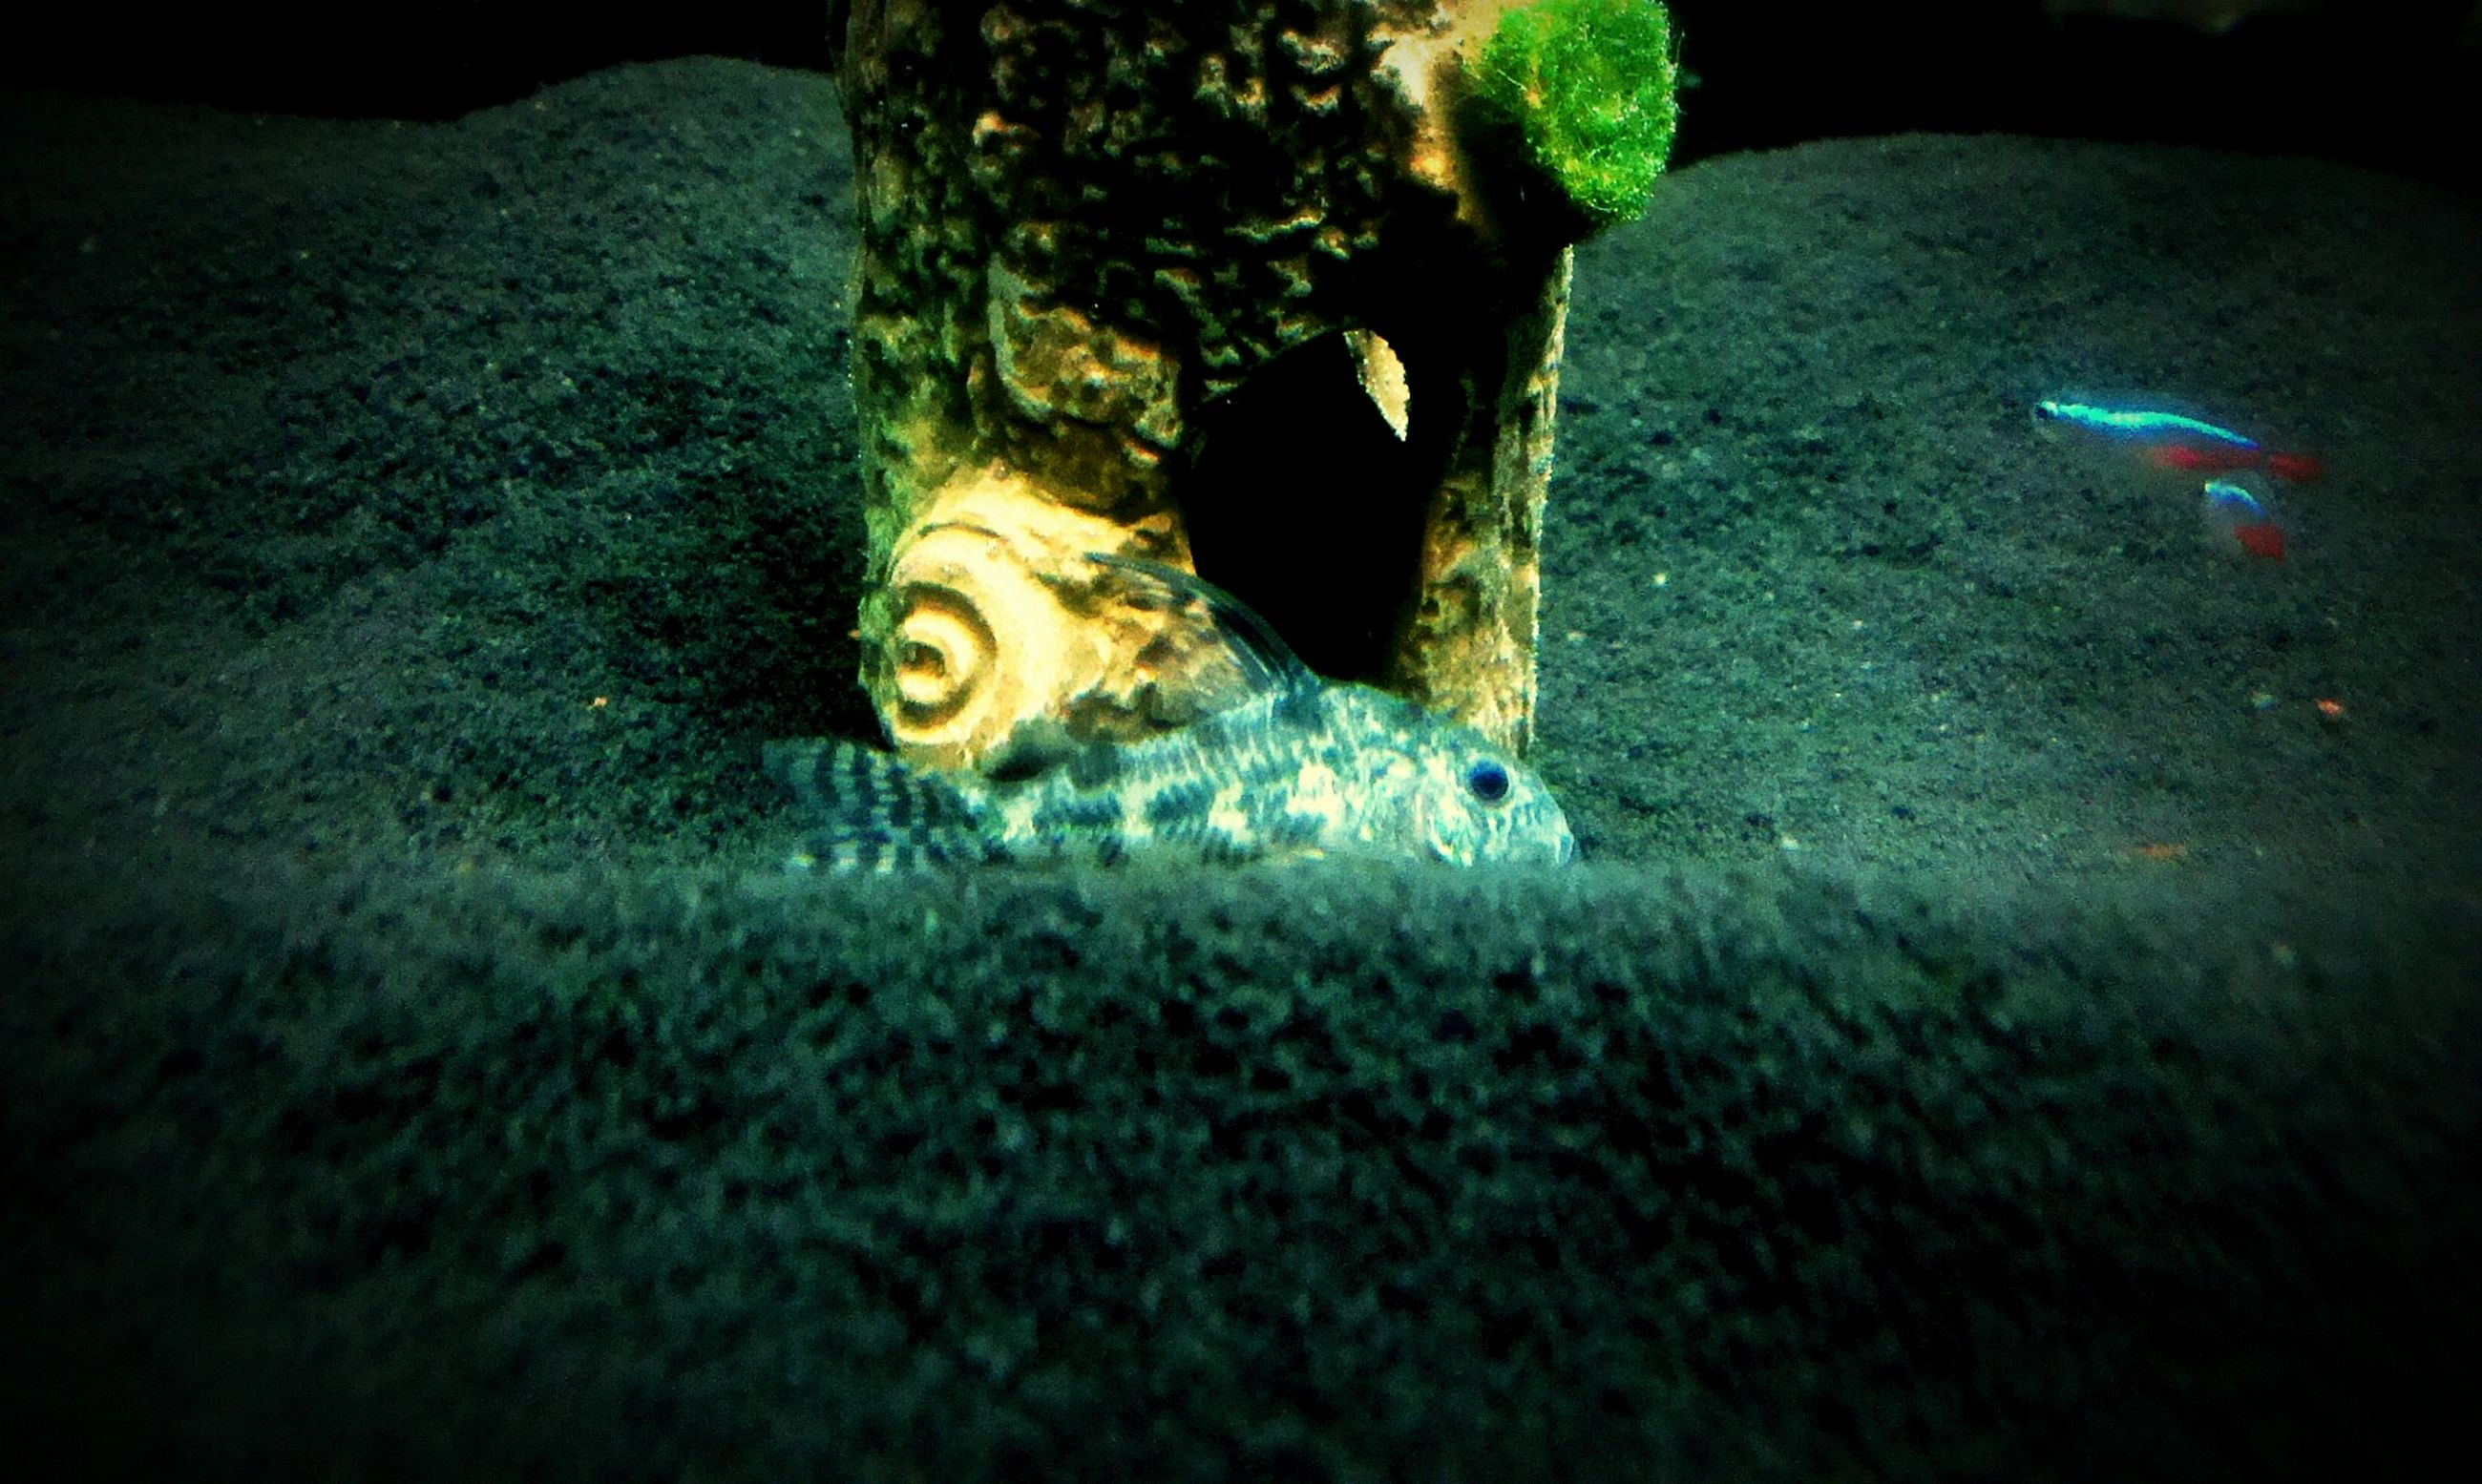 night, high angle view, close-up, indoors, creativity, no people, art and craft, toy, art, multi colored, still life, animal representation, human representation, selective focus, circle, green color, textured, ground, single object